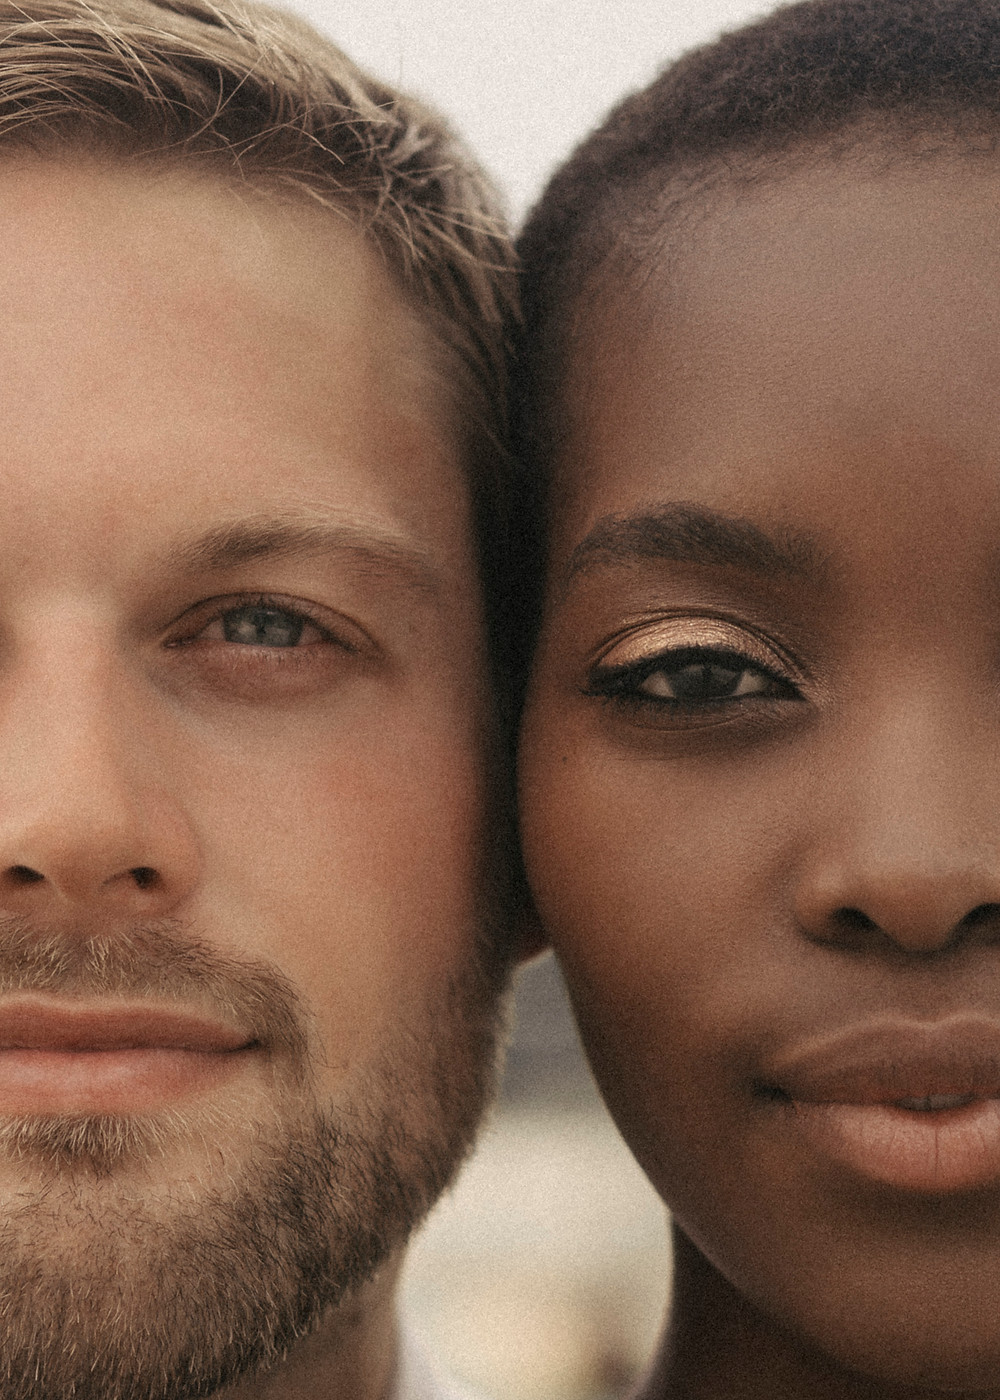 Interracial Couple Photo Portrait